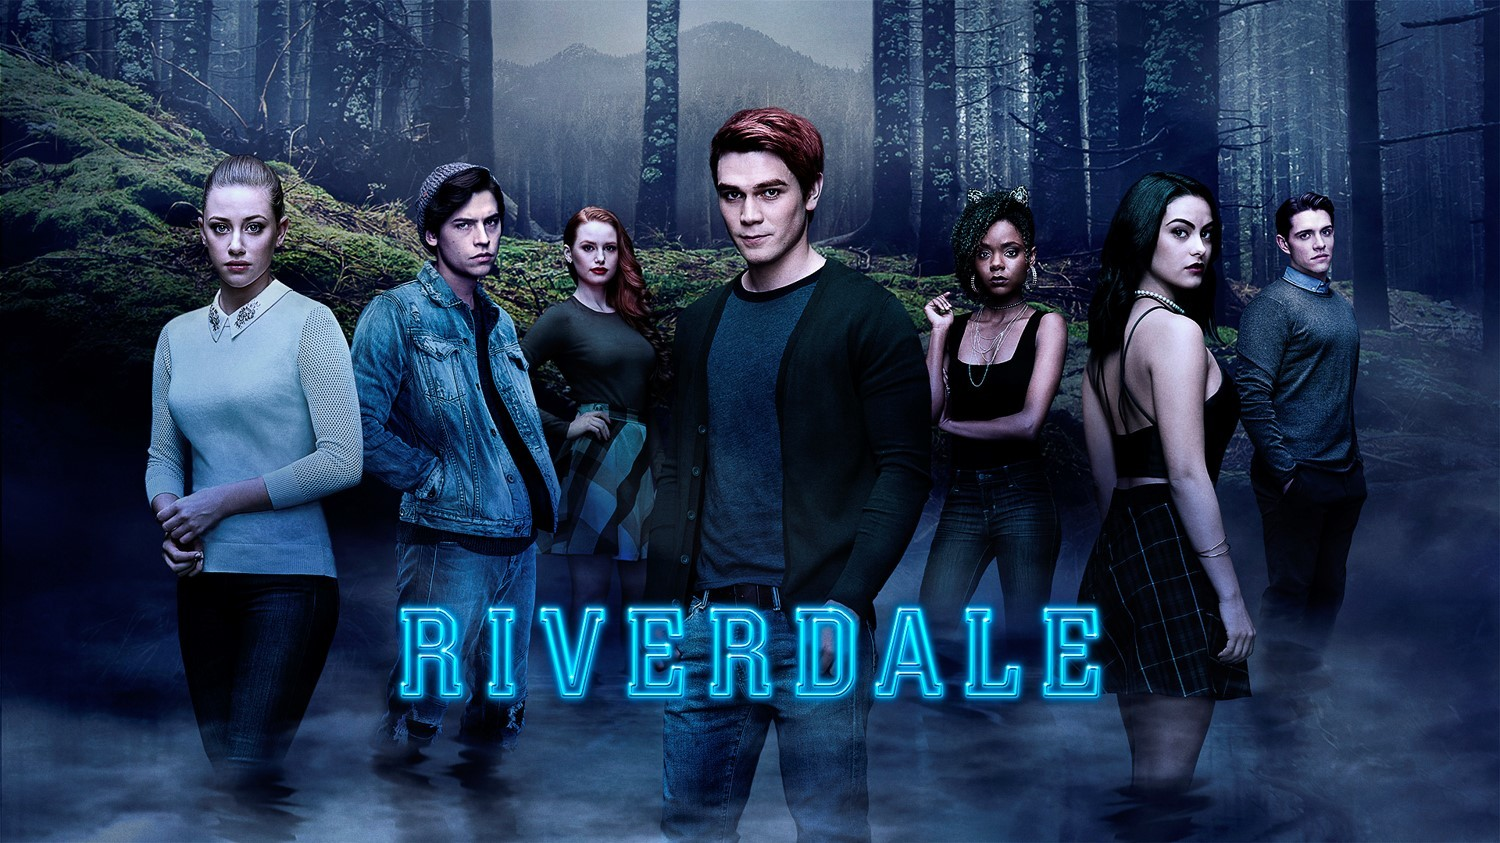 Riverdale_Season_1_Poster_(Unknown_Release_Date)